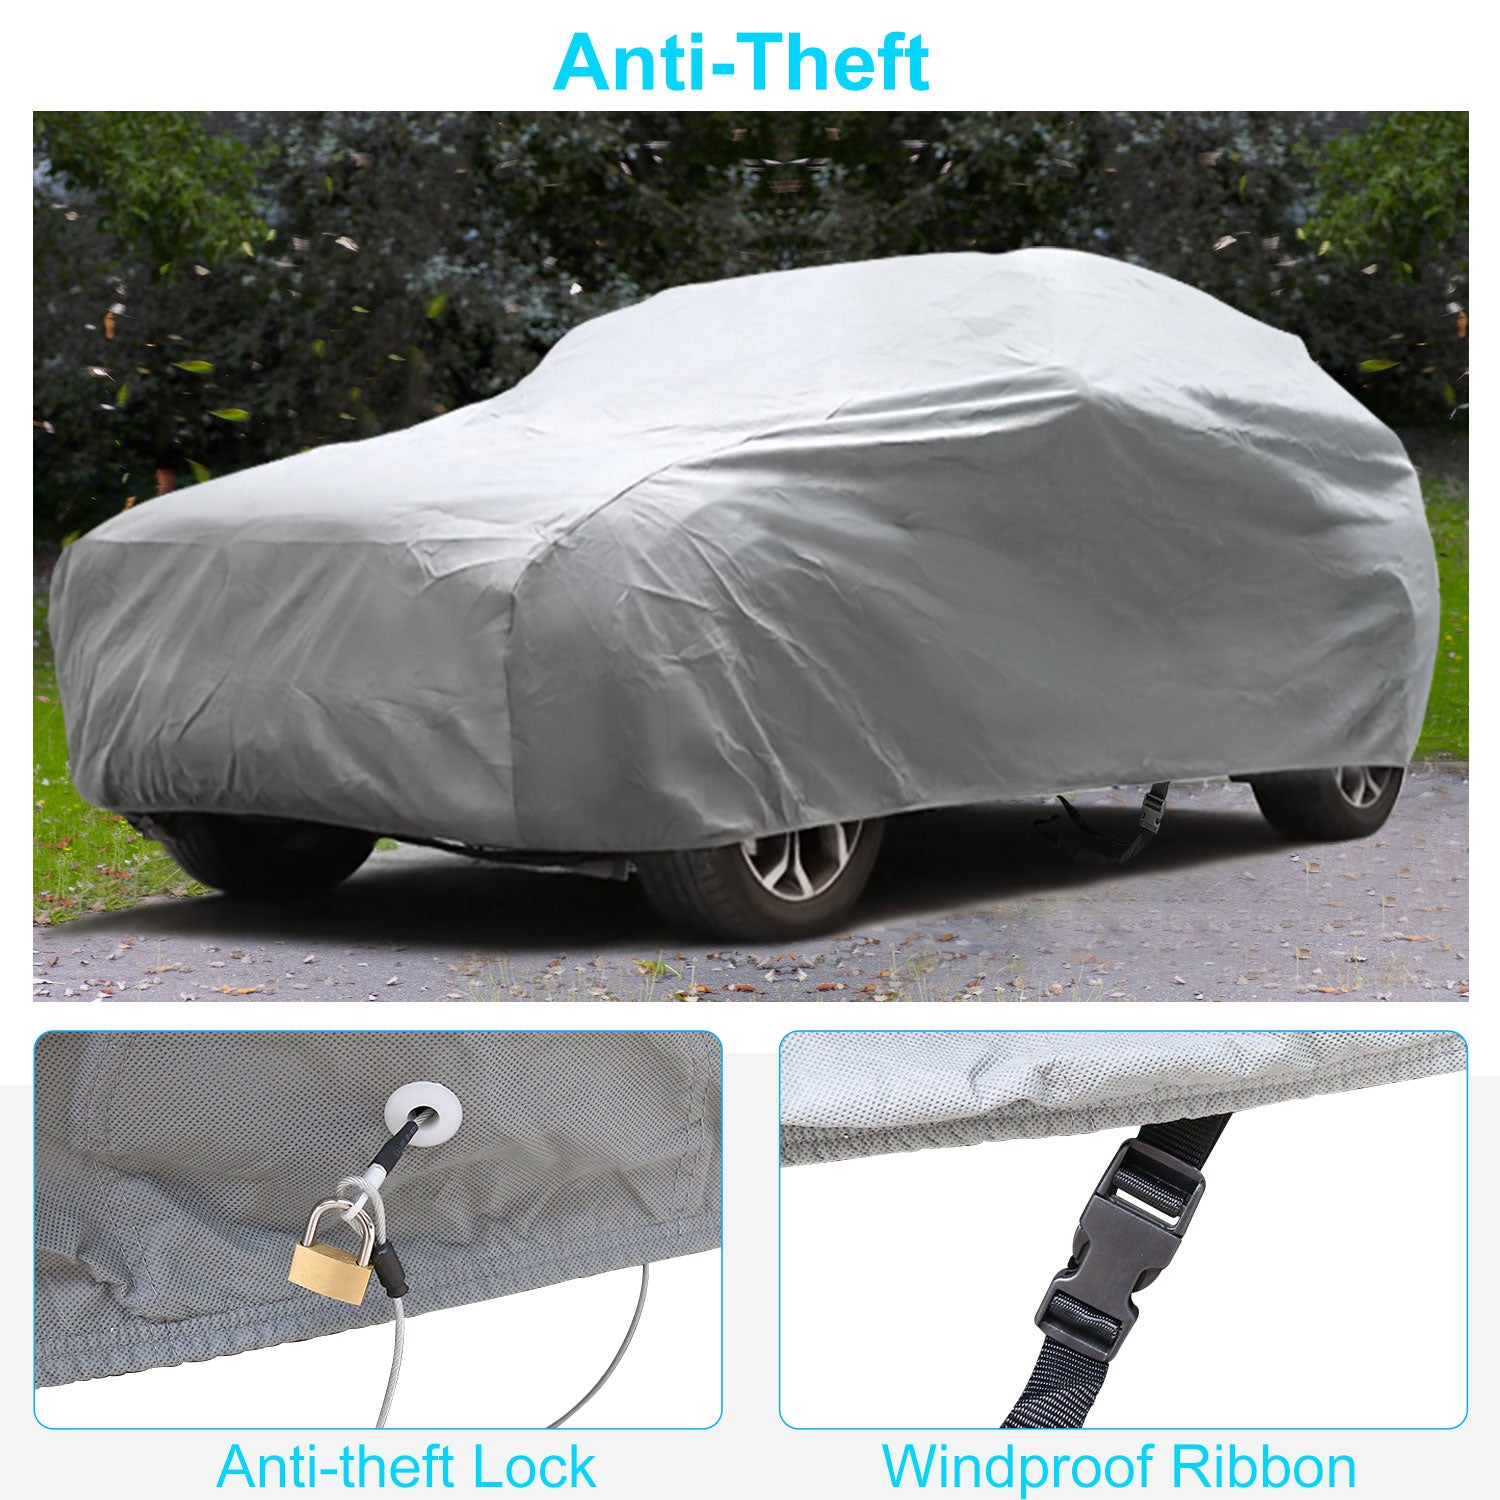 "SUV Cover Waterproof 5 Layers Windproof Waterproof for Indoor Outdoor, All Weather Covers for Car, Windproof Ribbon & Anti-theft Lock, Fits 181""-202"" SUV"